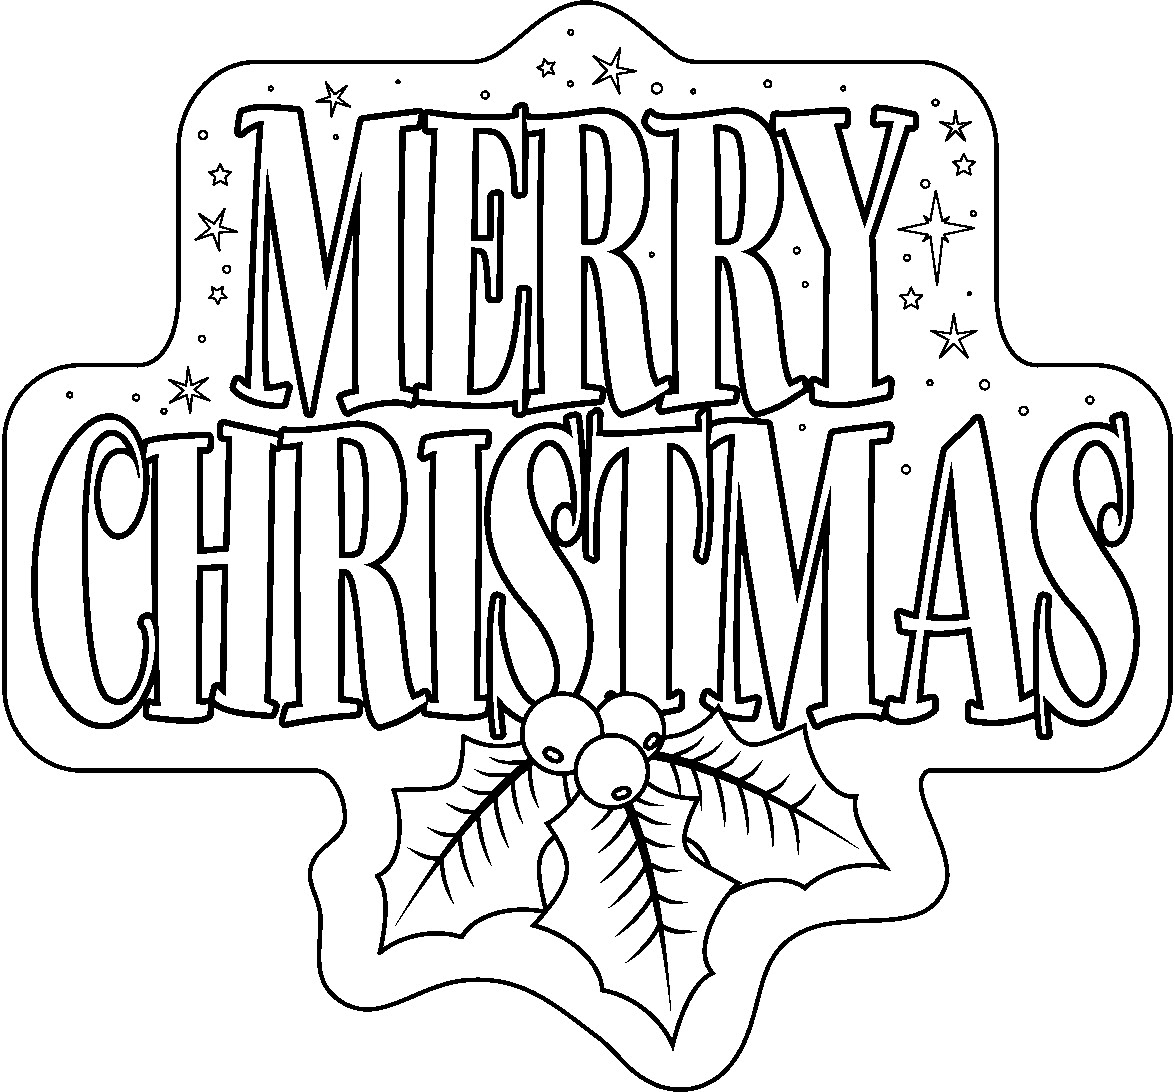 Merry christmas black and white merry christmas clipart.